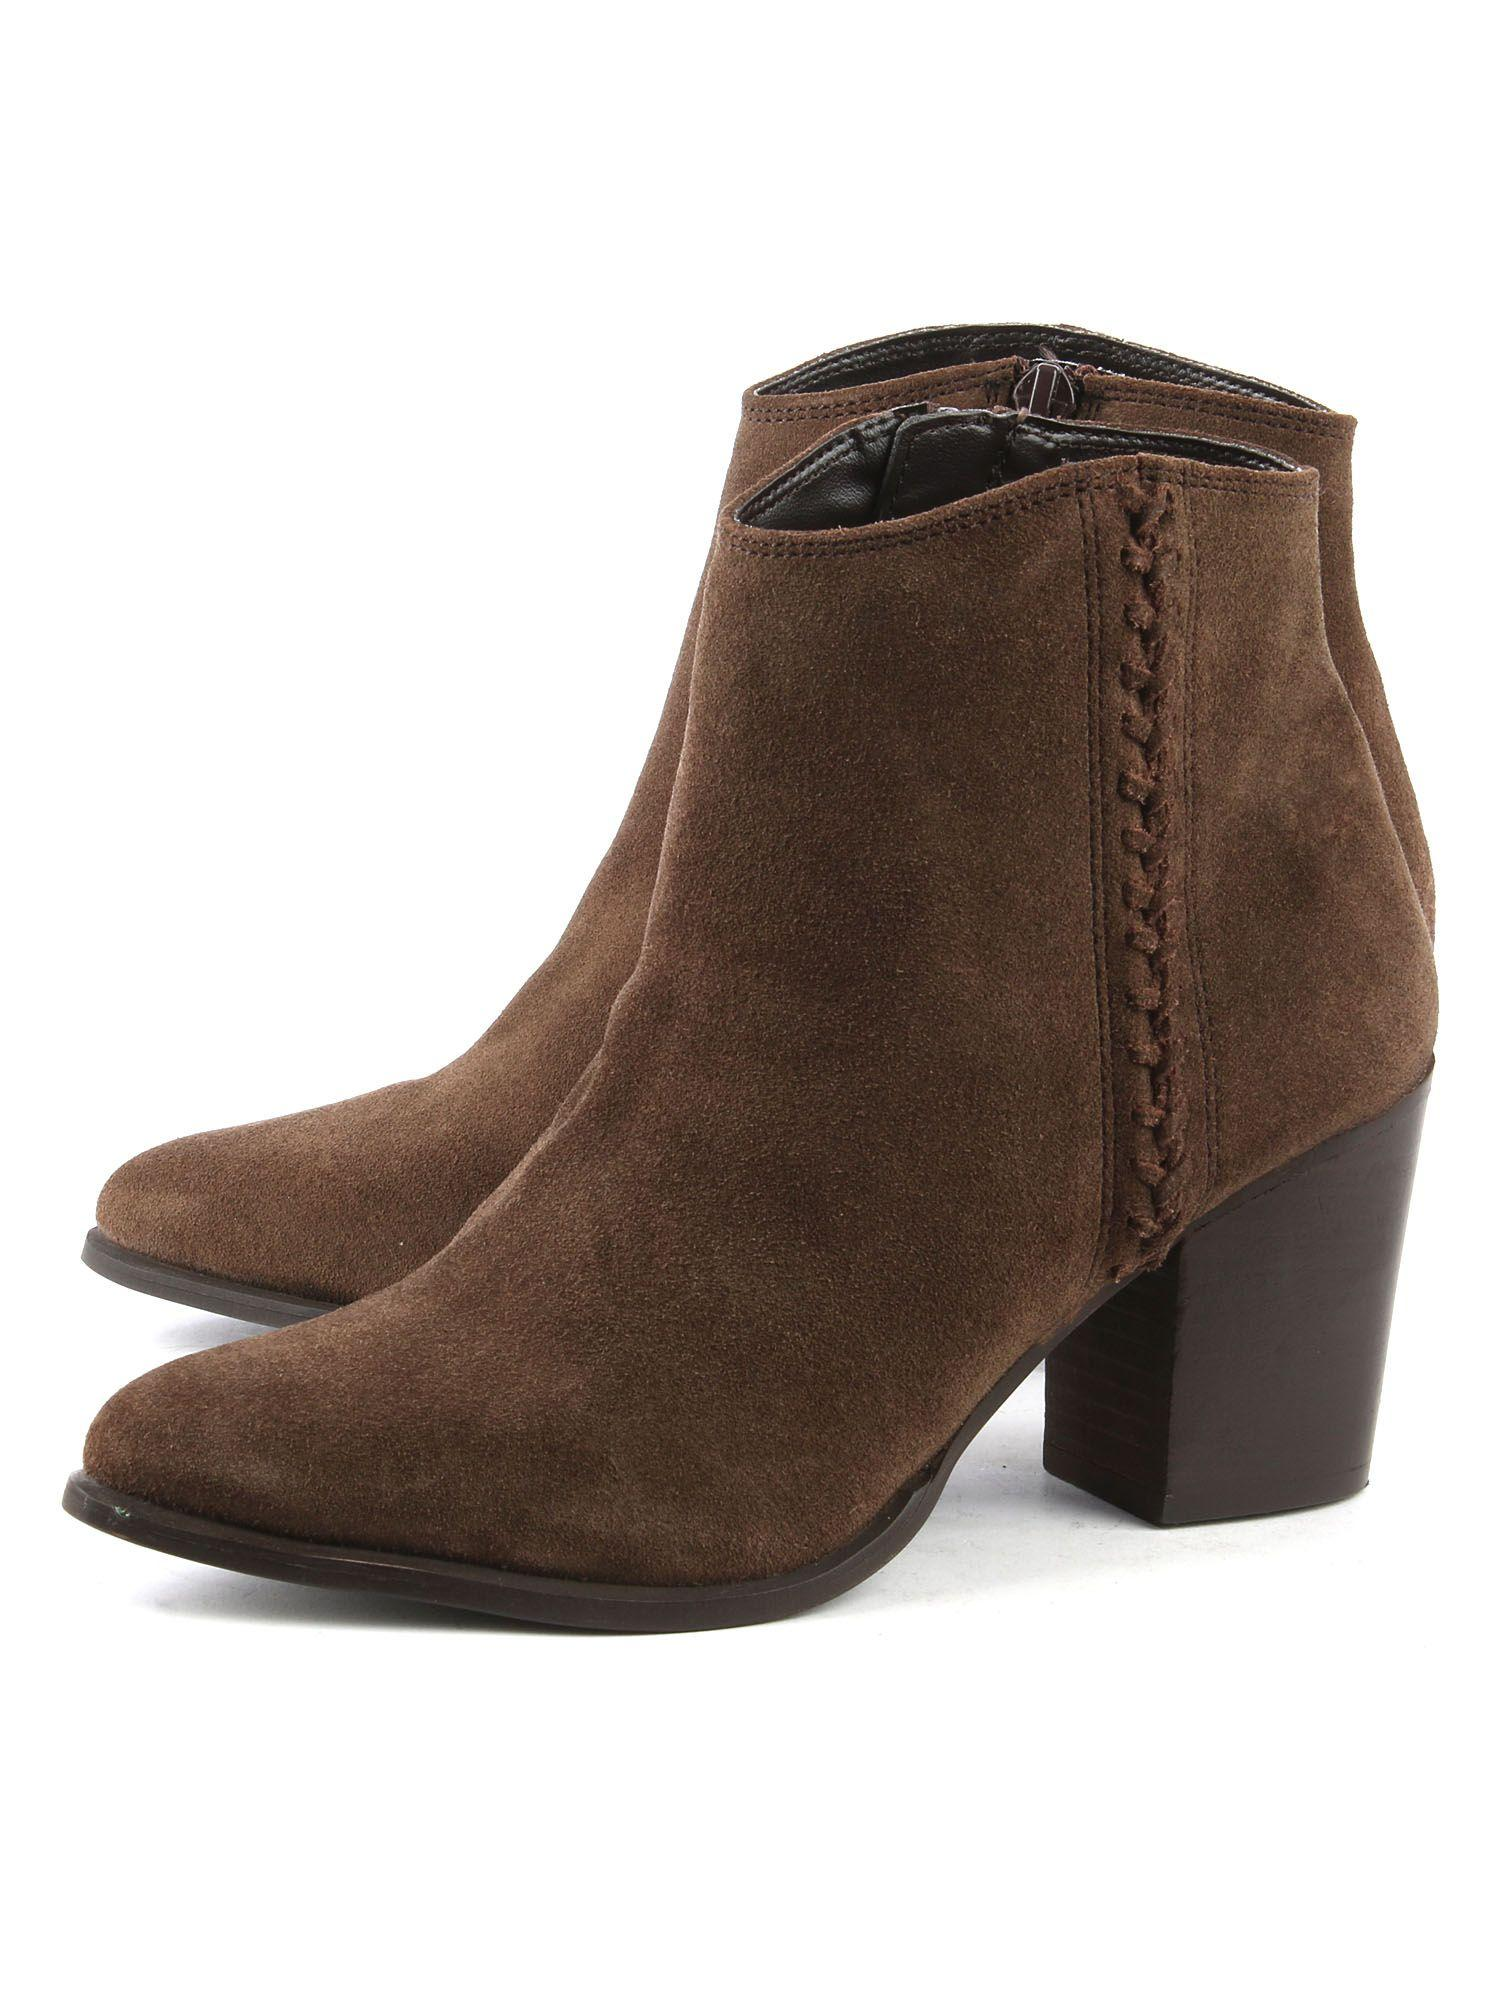 Daniel Leather Victorina Pointed Toe Ankle Boots in Brown